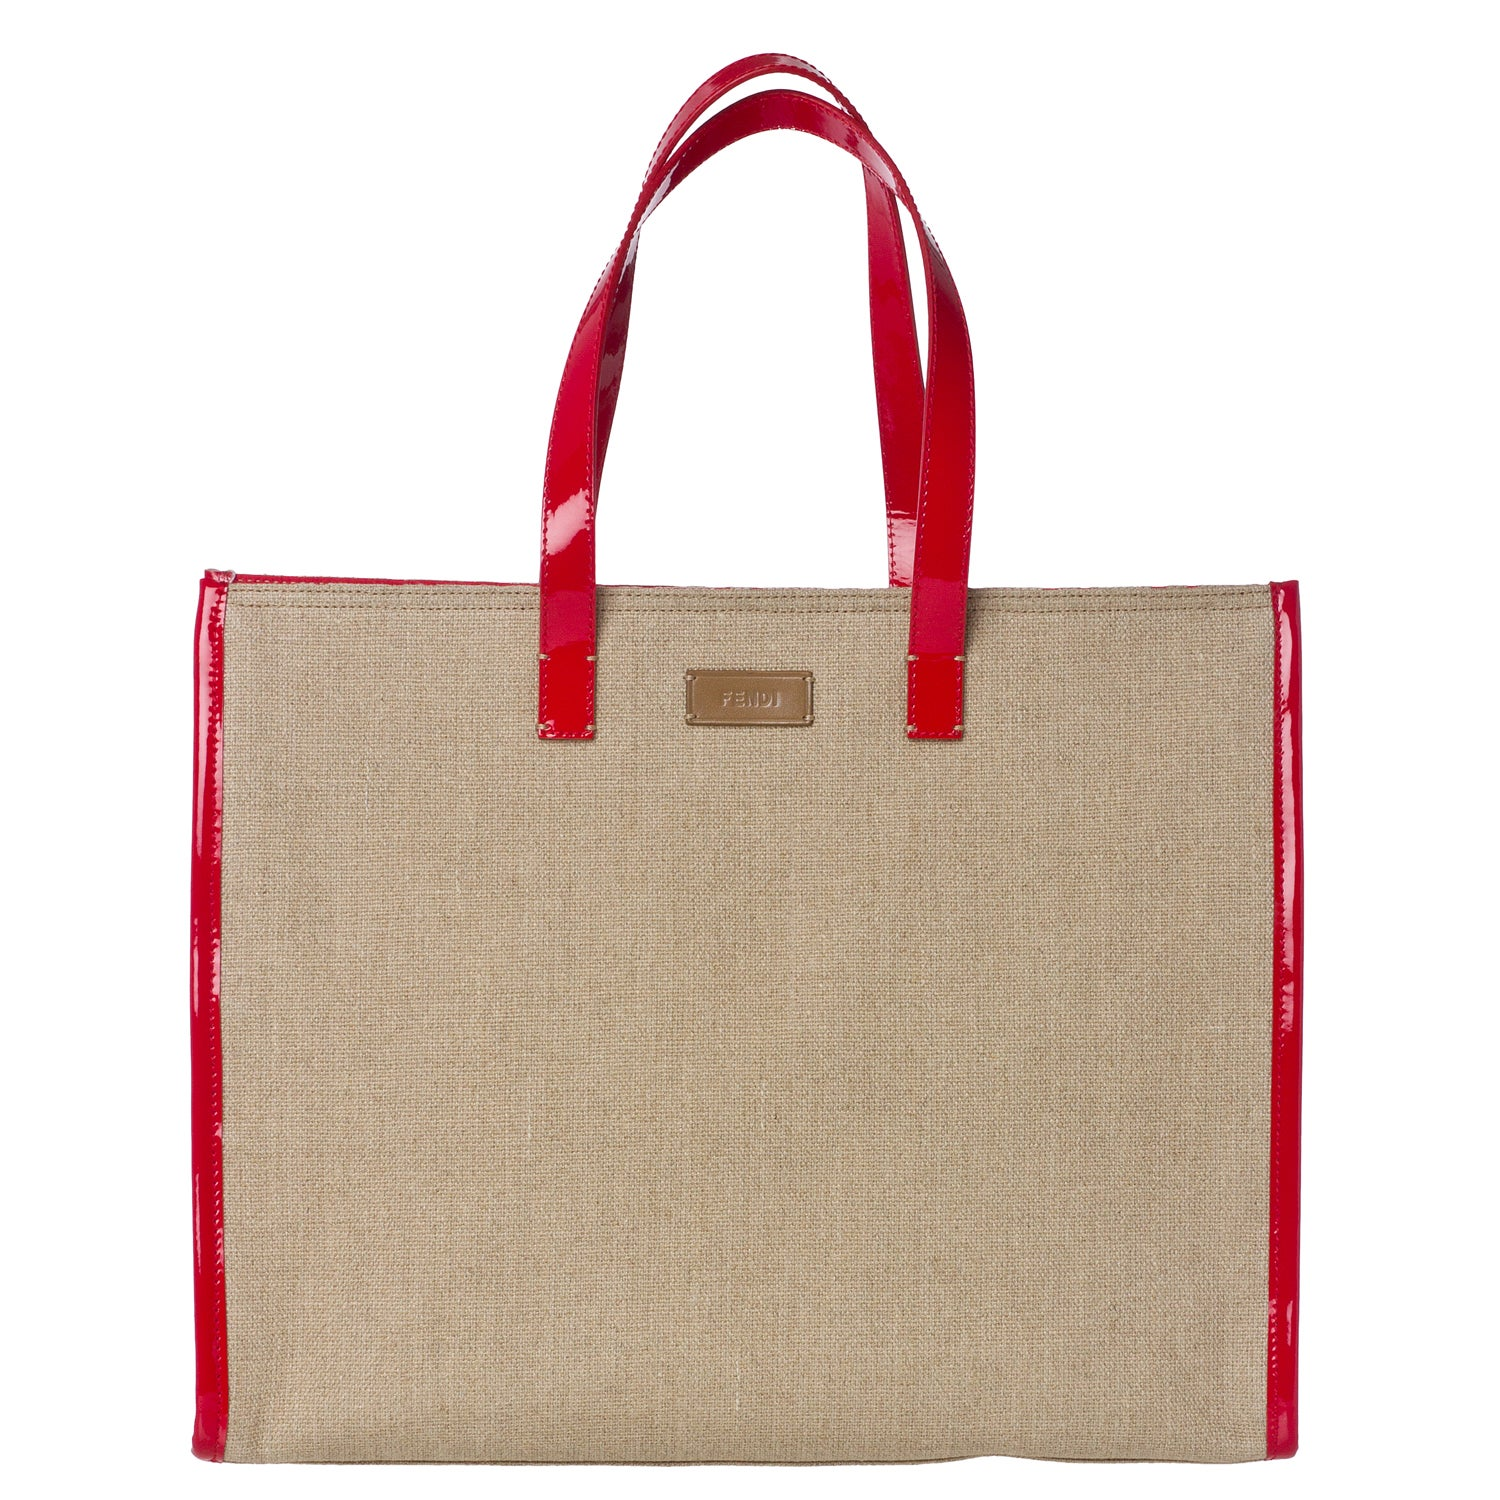 Fendi Strawberry/ Tan Linen Tote Bag